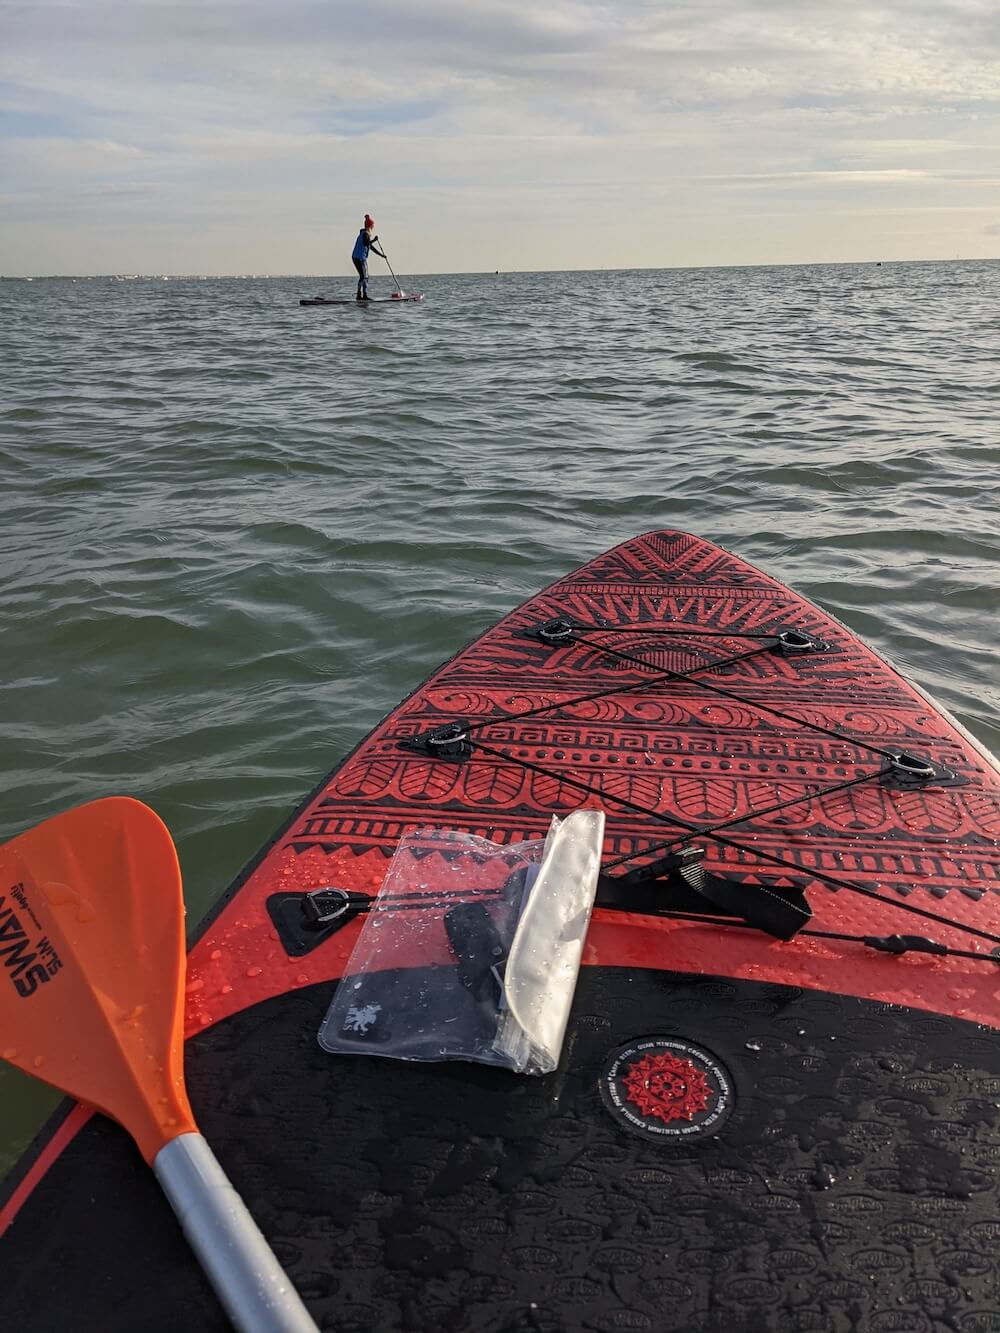 Going paddleboarding in winter